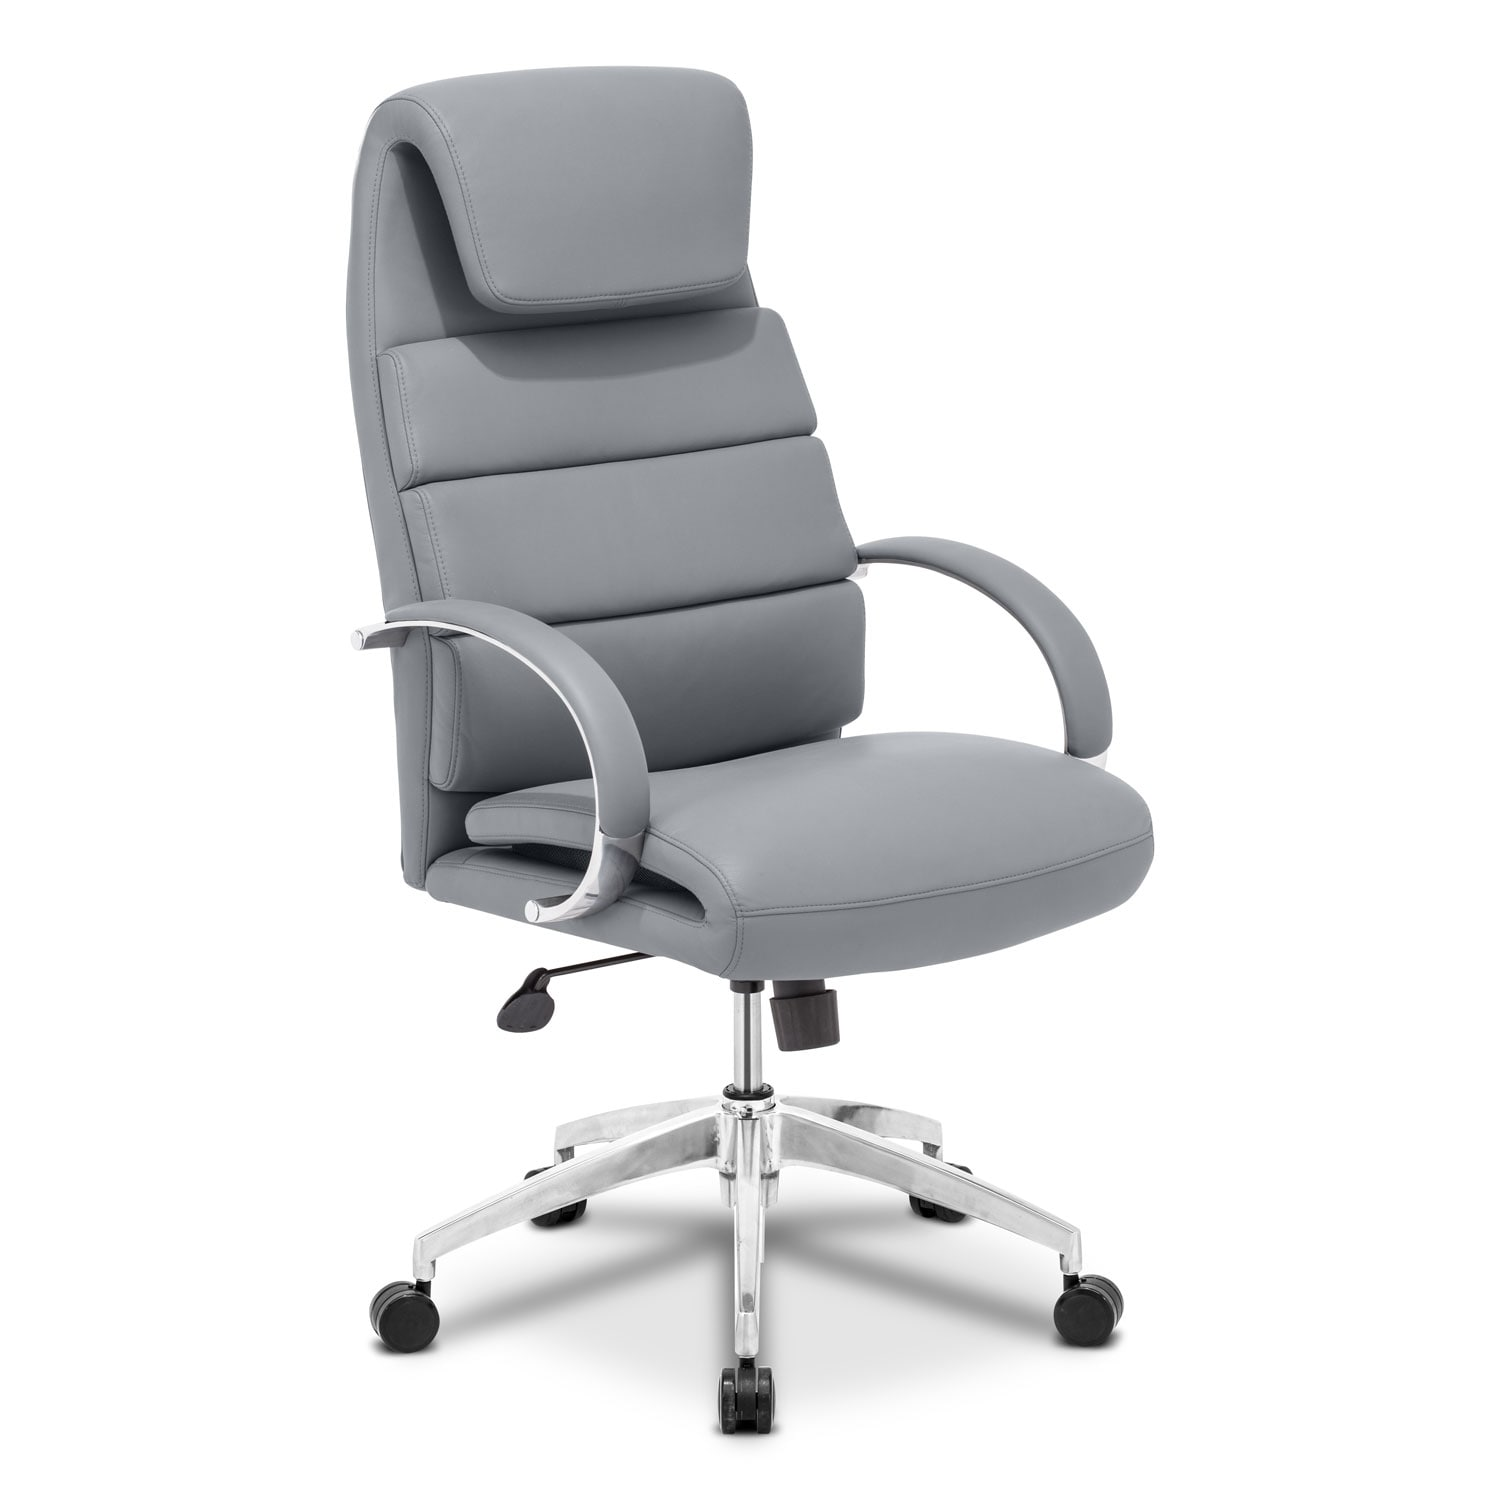 Clemens Office Arm Chair - Gray